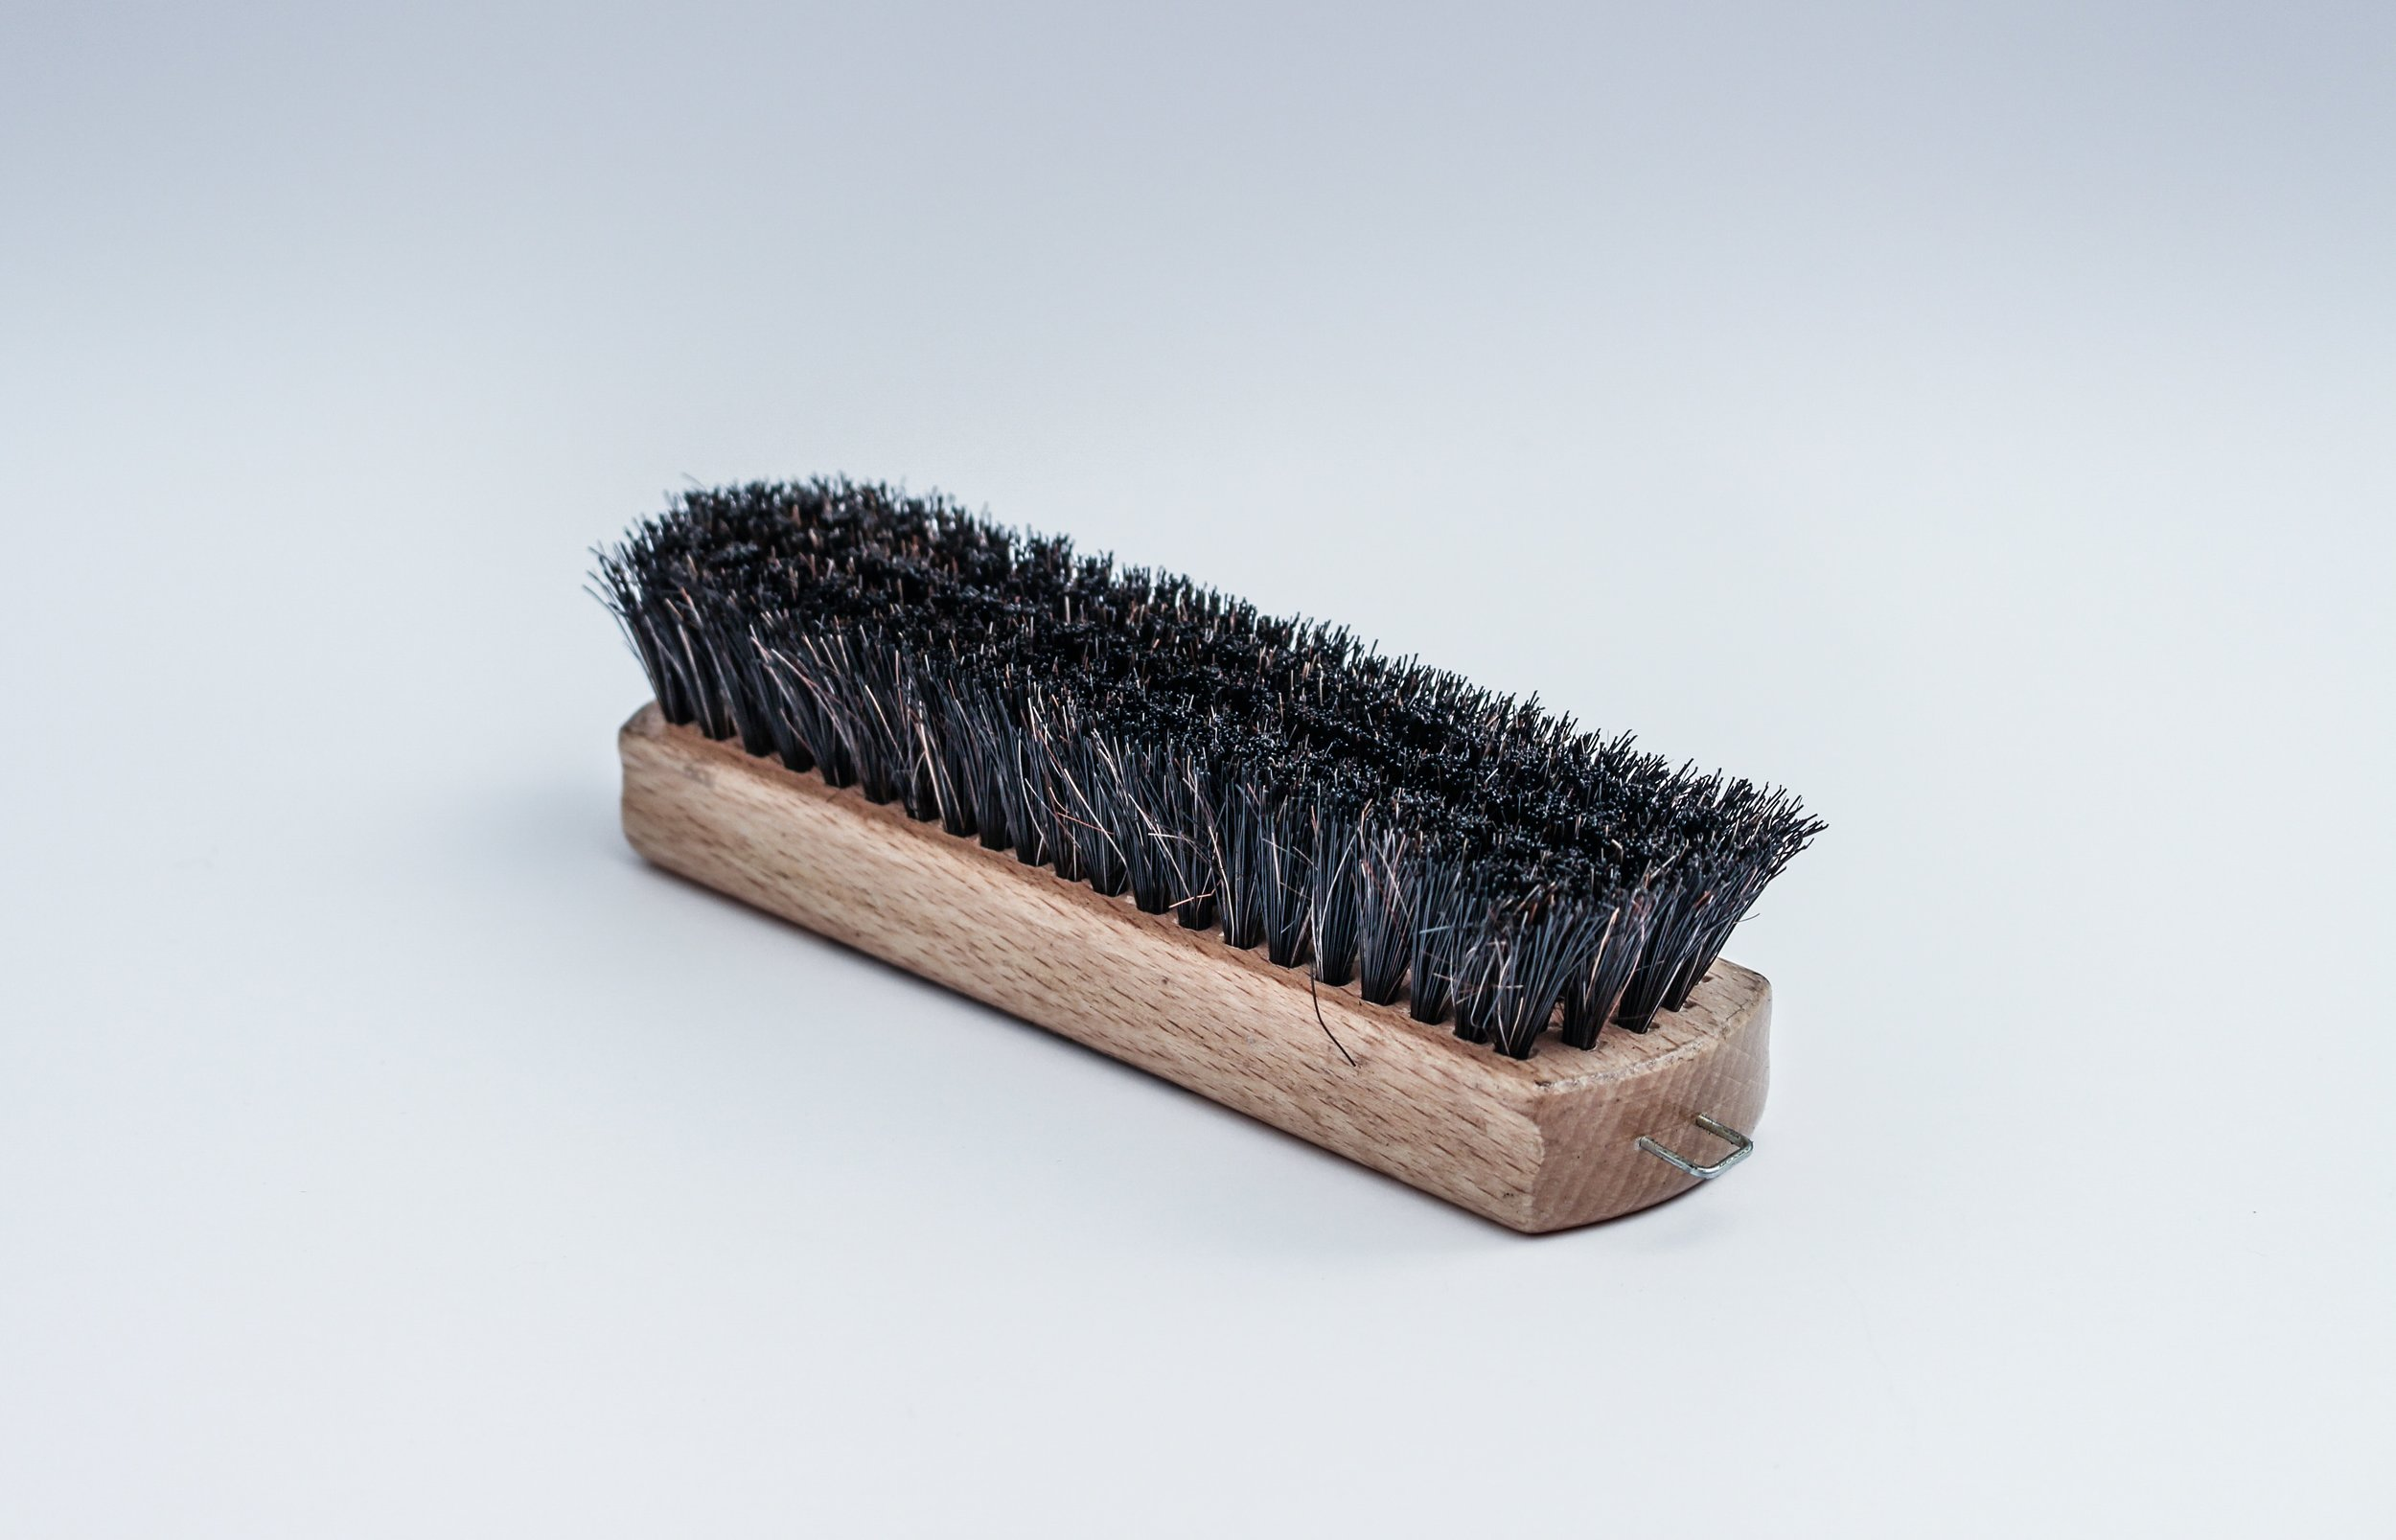 brush-cleaning-scrubber-45059.jpg